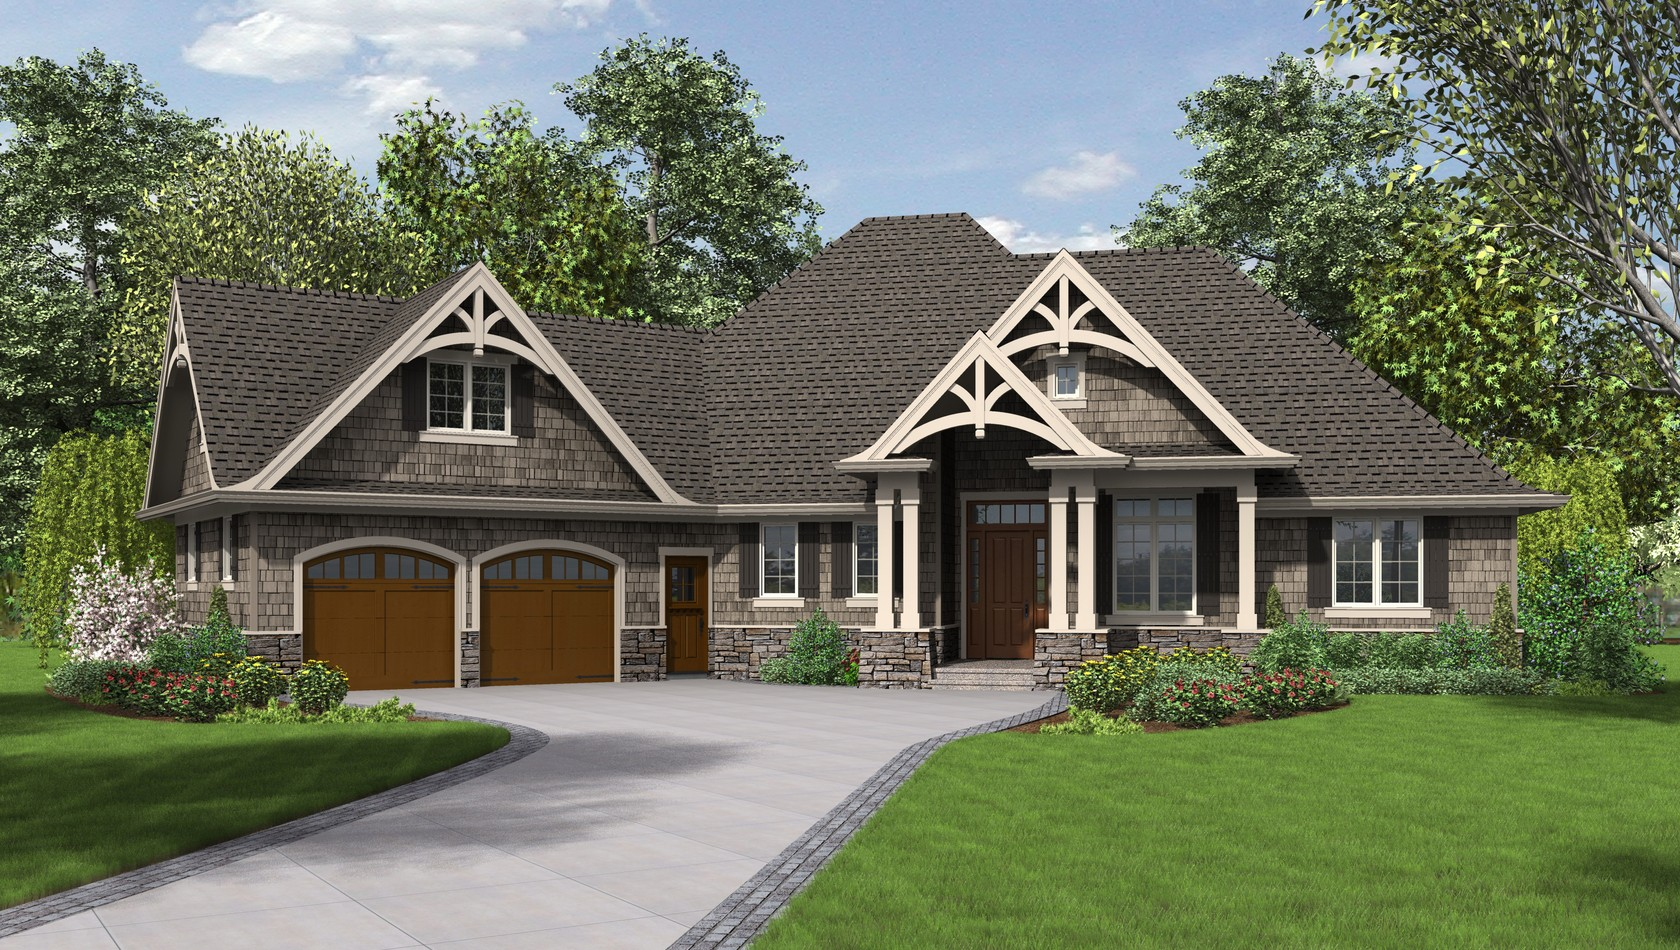 Main image for house plan B1248: The Ripley